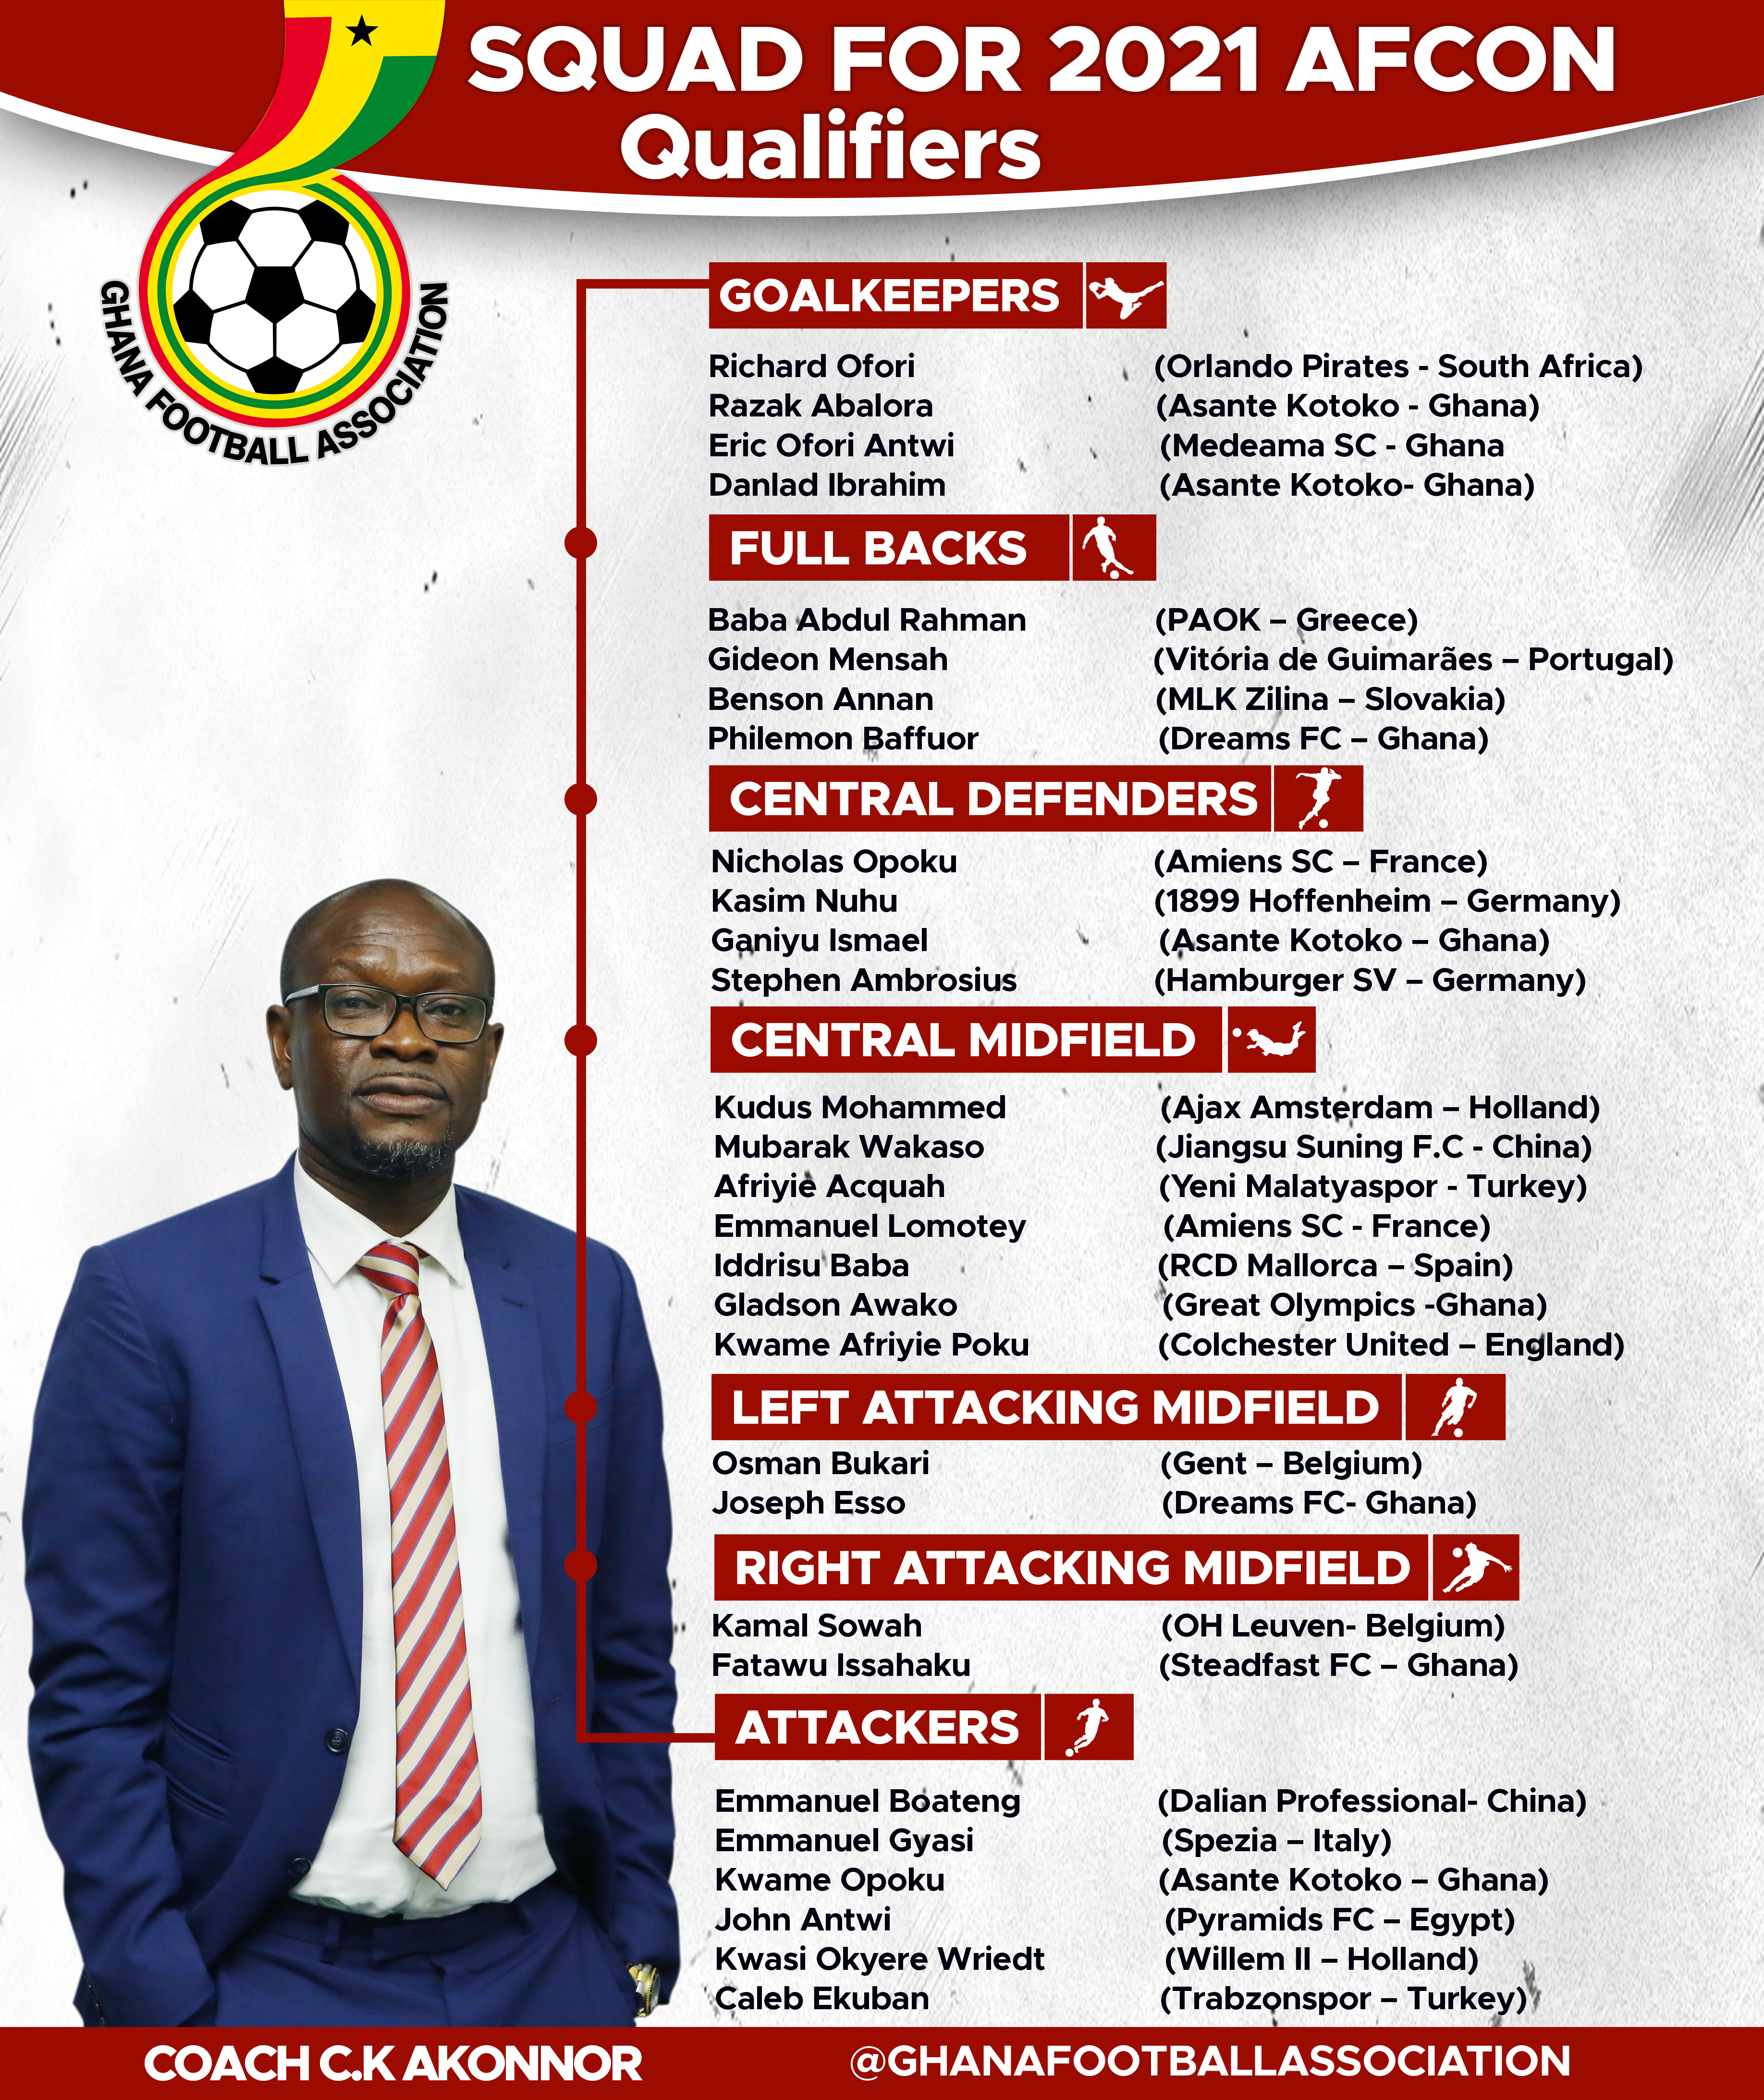 SQUAD-FOR-2021-AFCON-QUALIFIERS.jpg